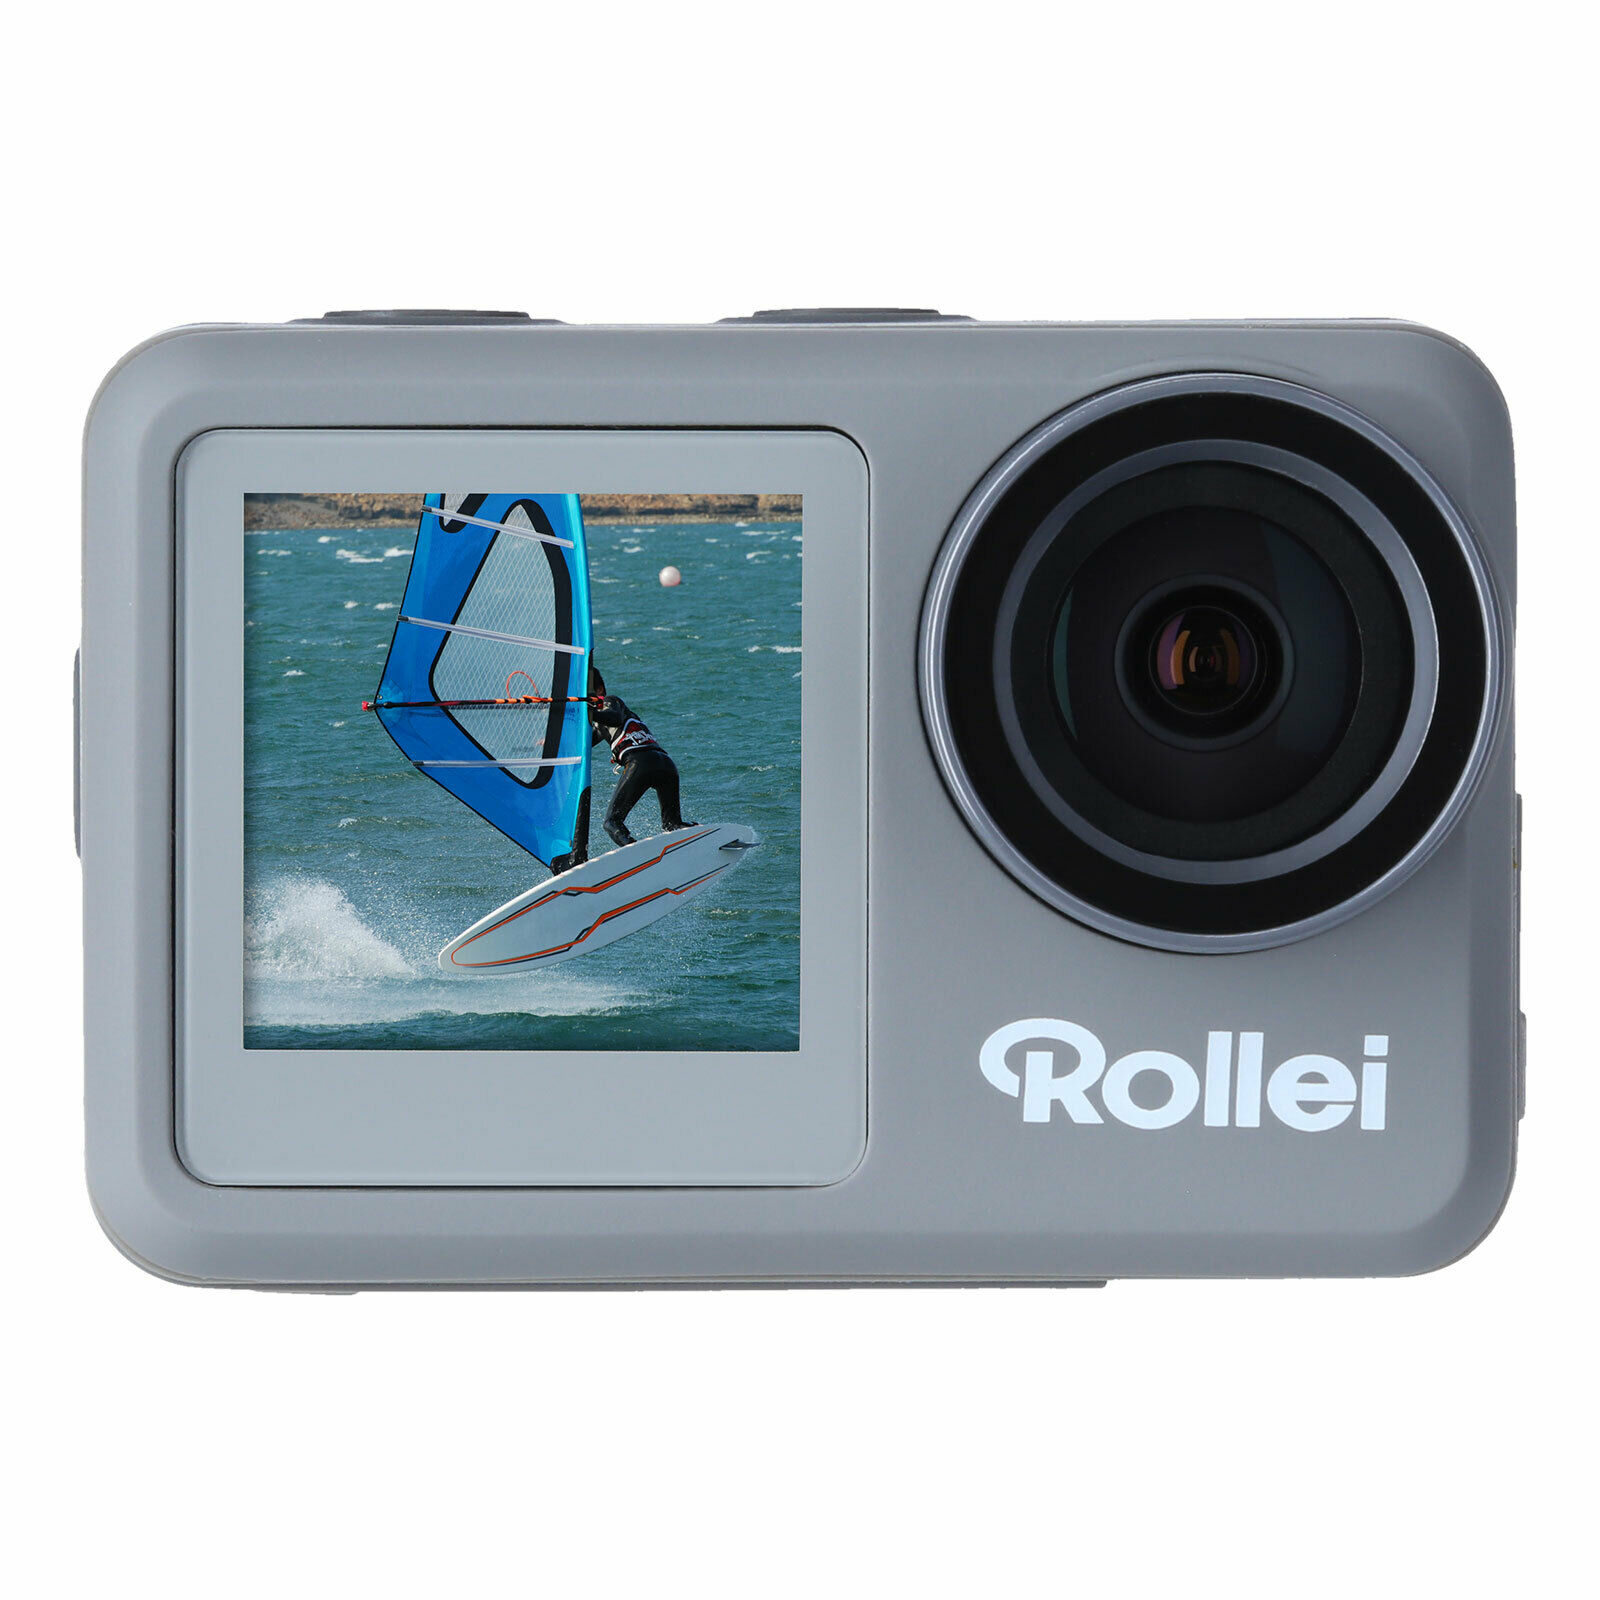 Rollei Actioncam 9S Plus Wasserdichte Actionkamera 4K 60 FPS WiFi Touchscreen